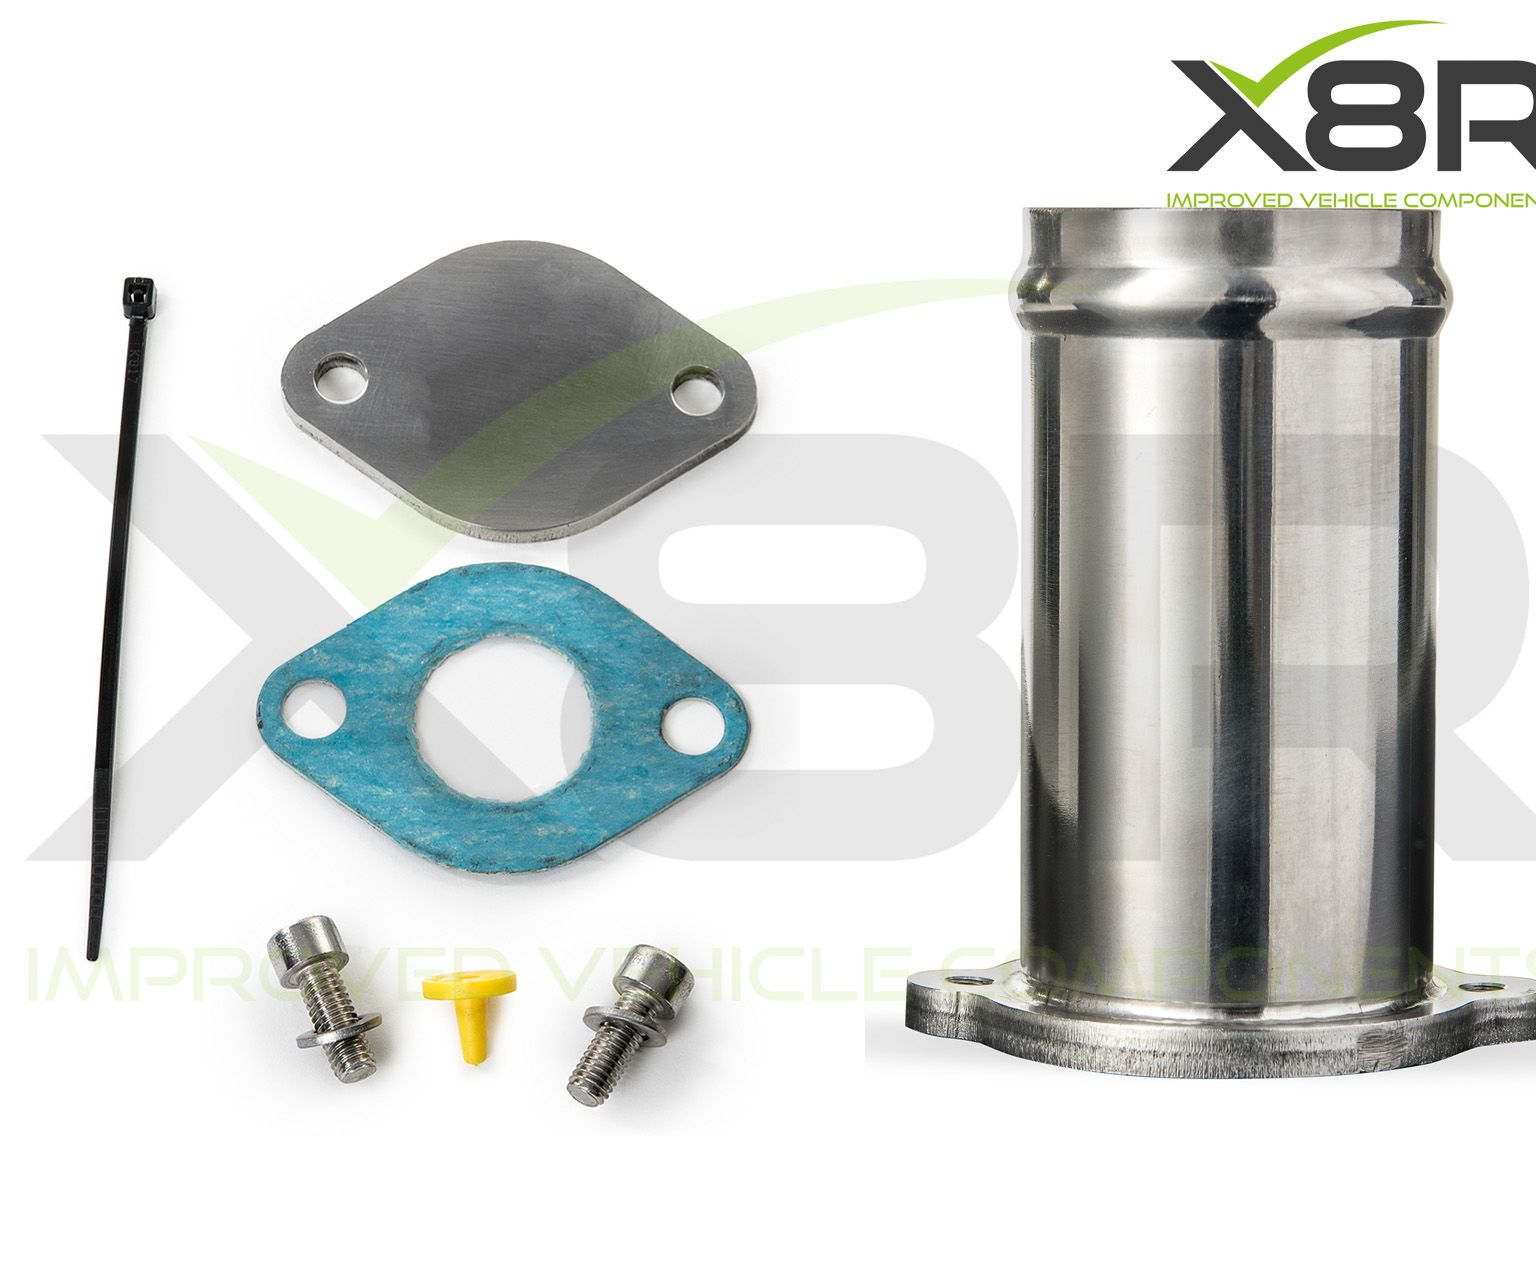 Ford Mondeo Jaguar X Type 2.0 2.2 TDCi EGR Valve Delete Bypass Blanking Blank Tube Fix Repair Fix Kit Replacement Install Instructions Guide